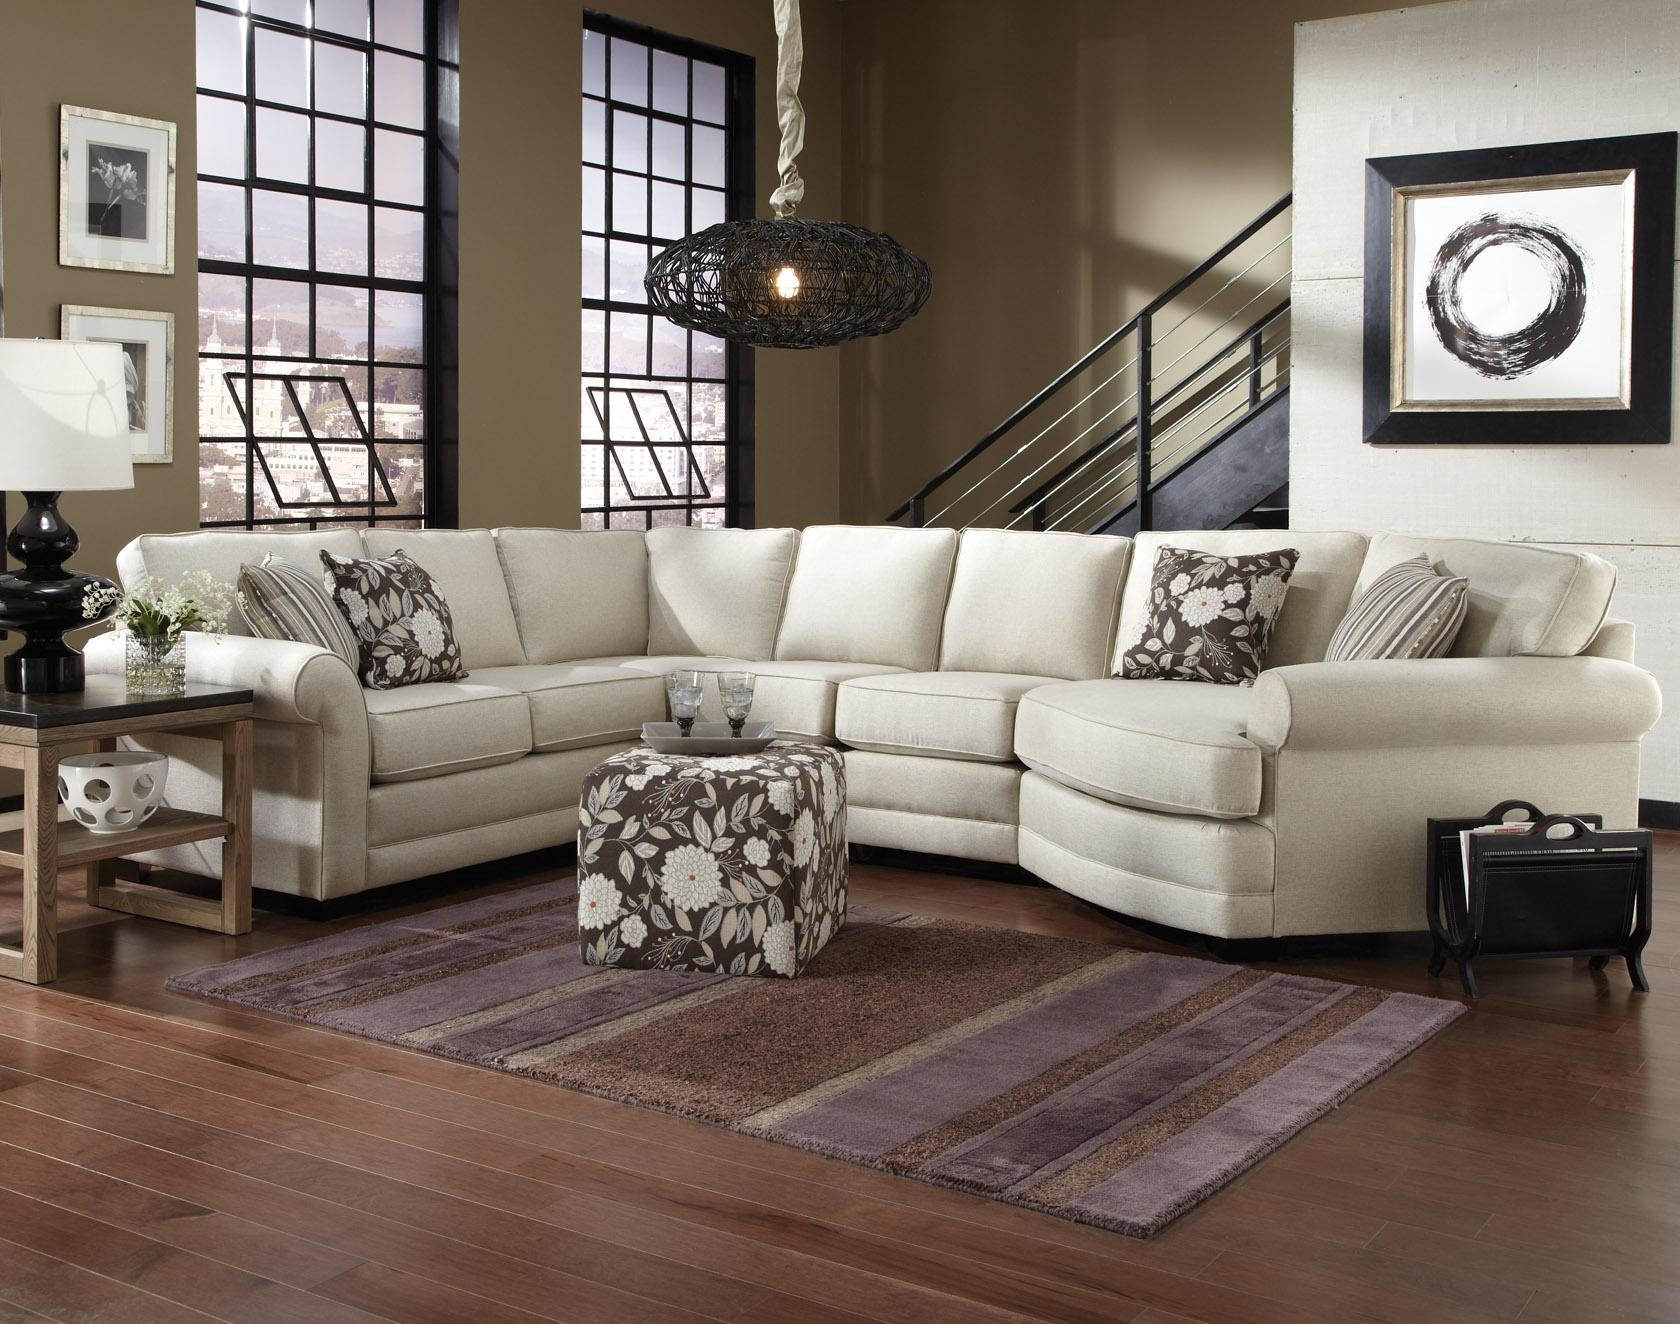 England Brantley 5 Seat Sectional Sofa With Cuddler   Ahfa   Sofa Within Wichita Ks Sectional Sofas (Photo 6 of 10)